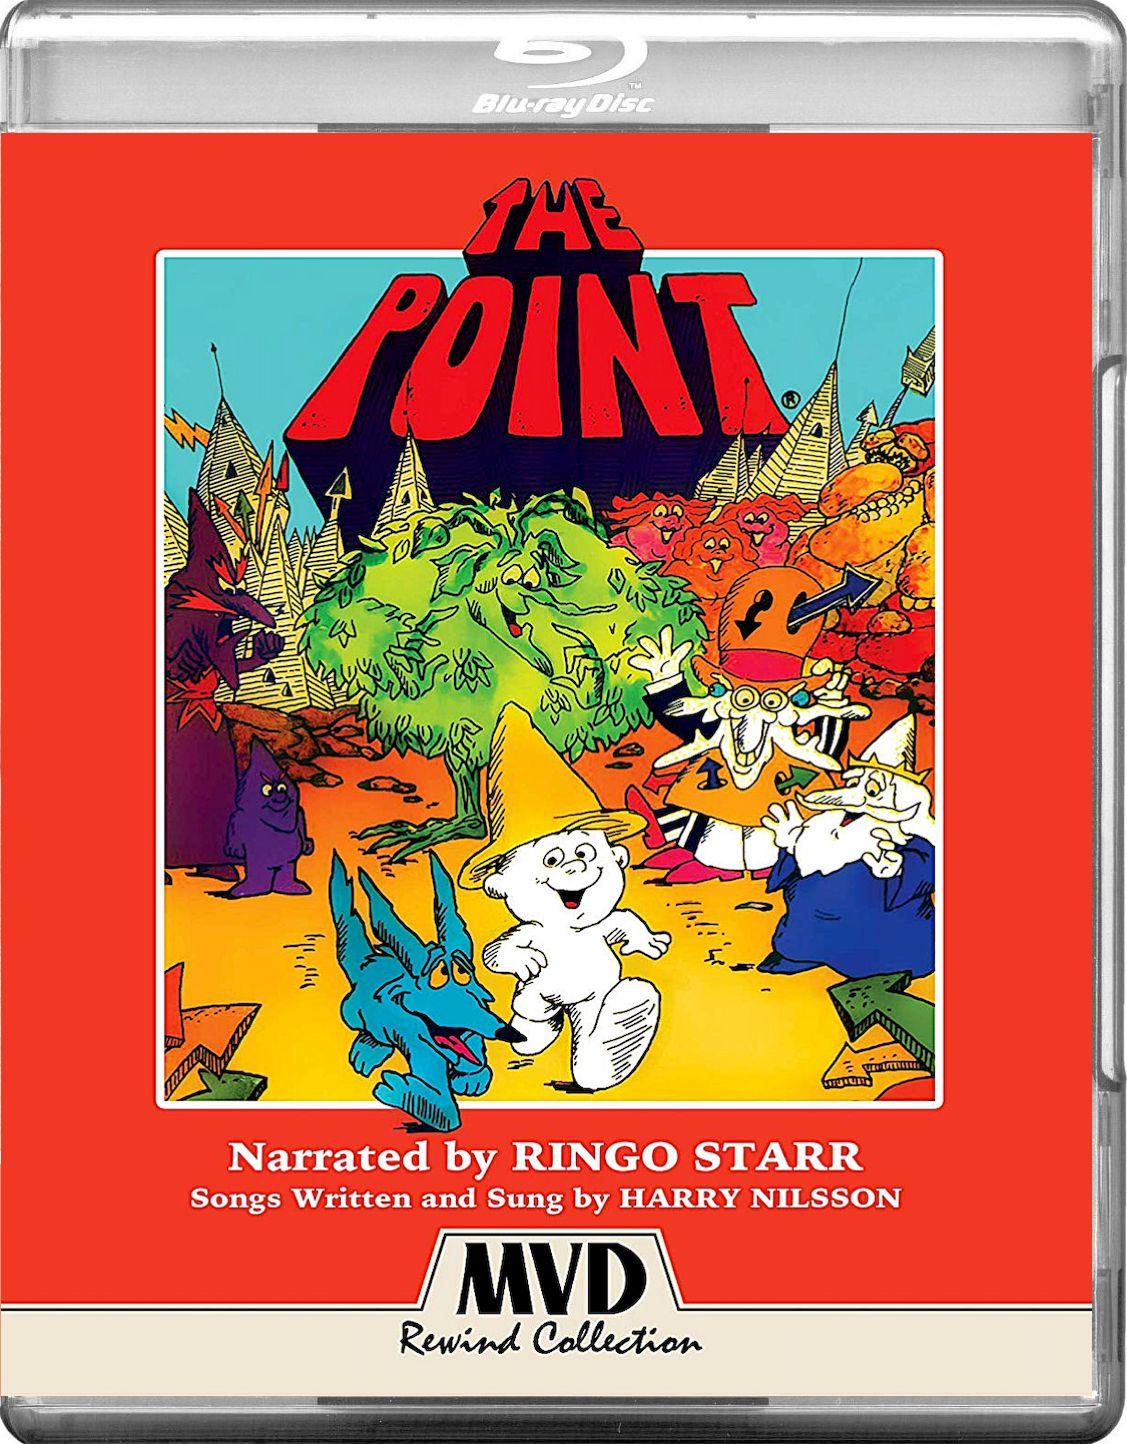 THE POINT BLURAY (MVD REWIND COLLECTION) Harry nilsson